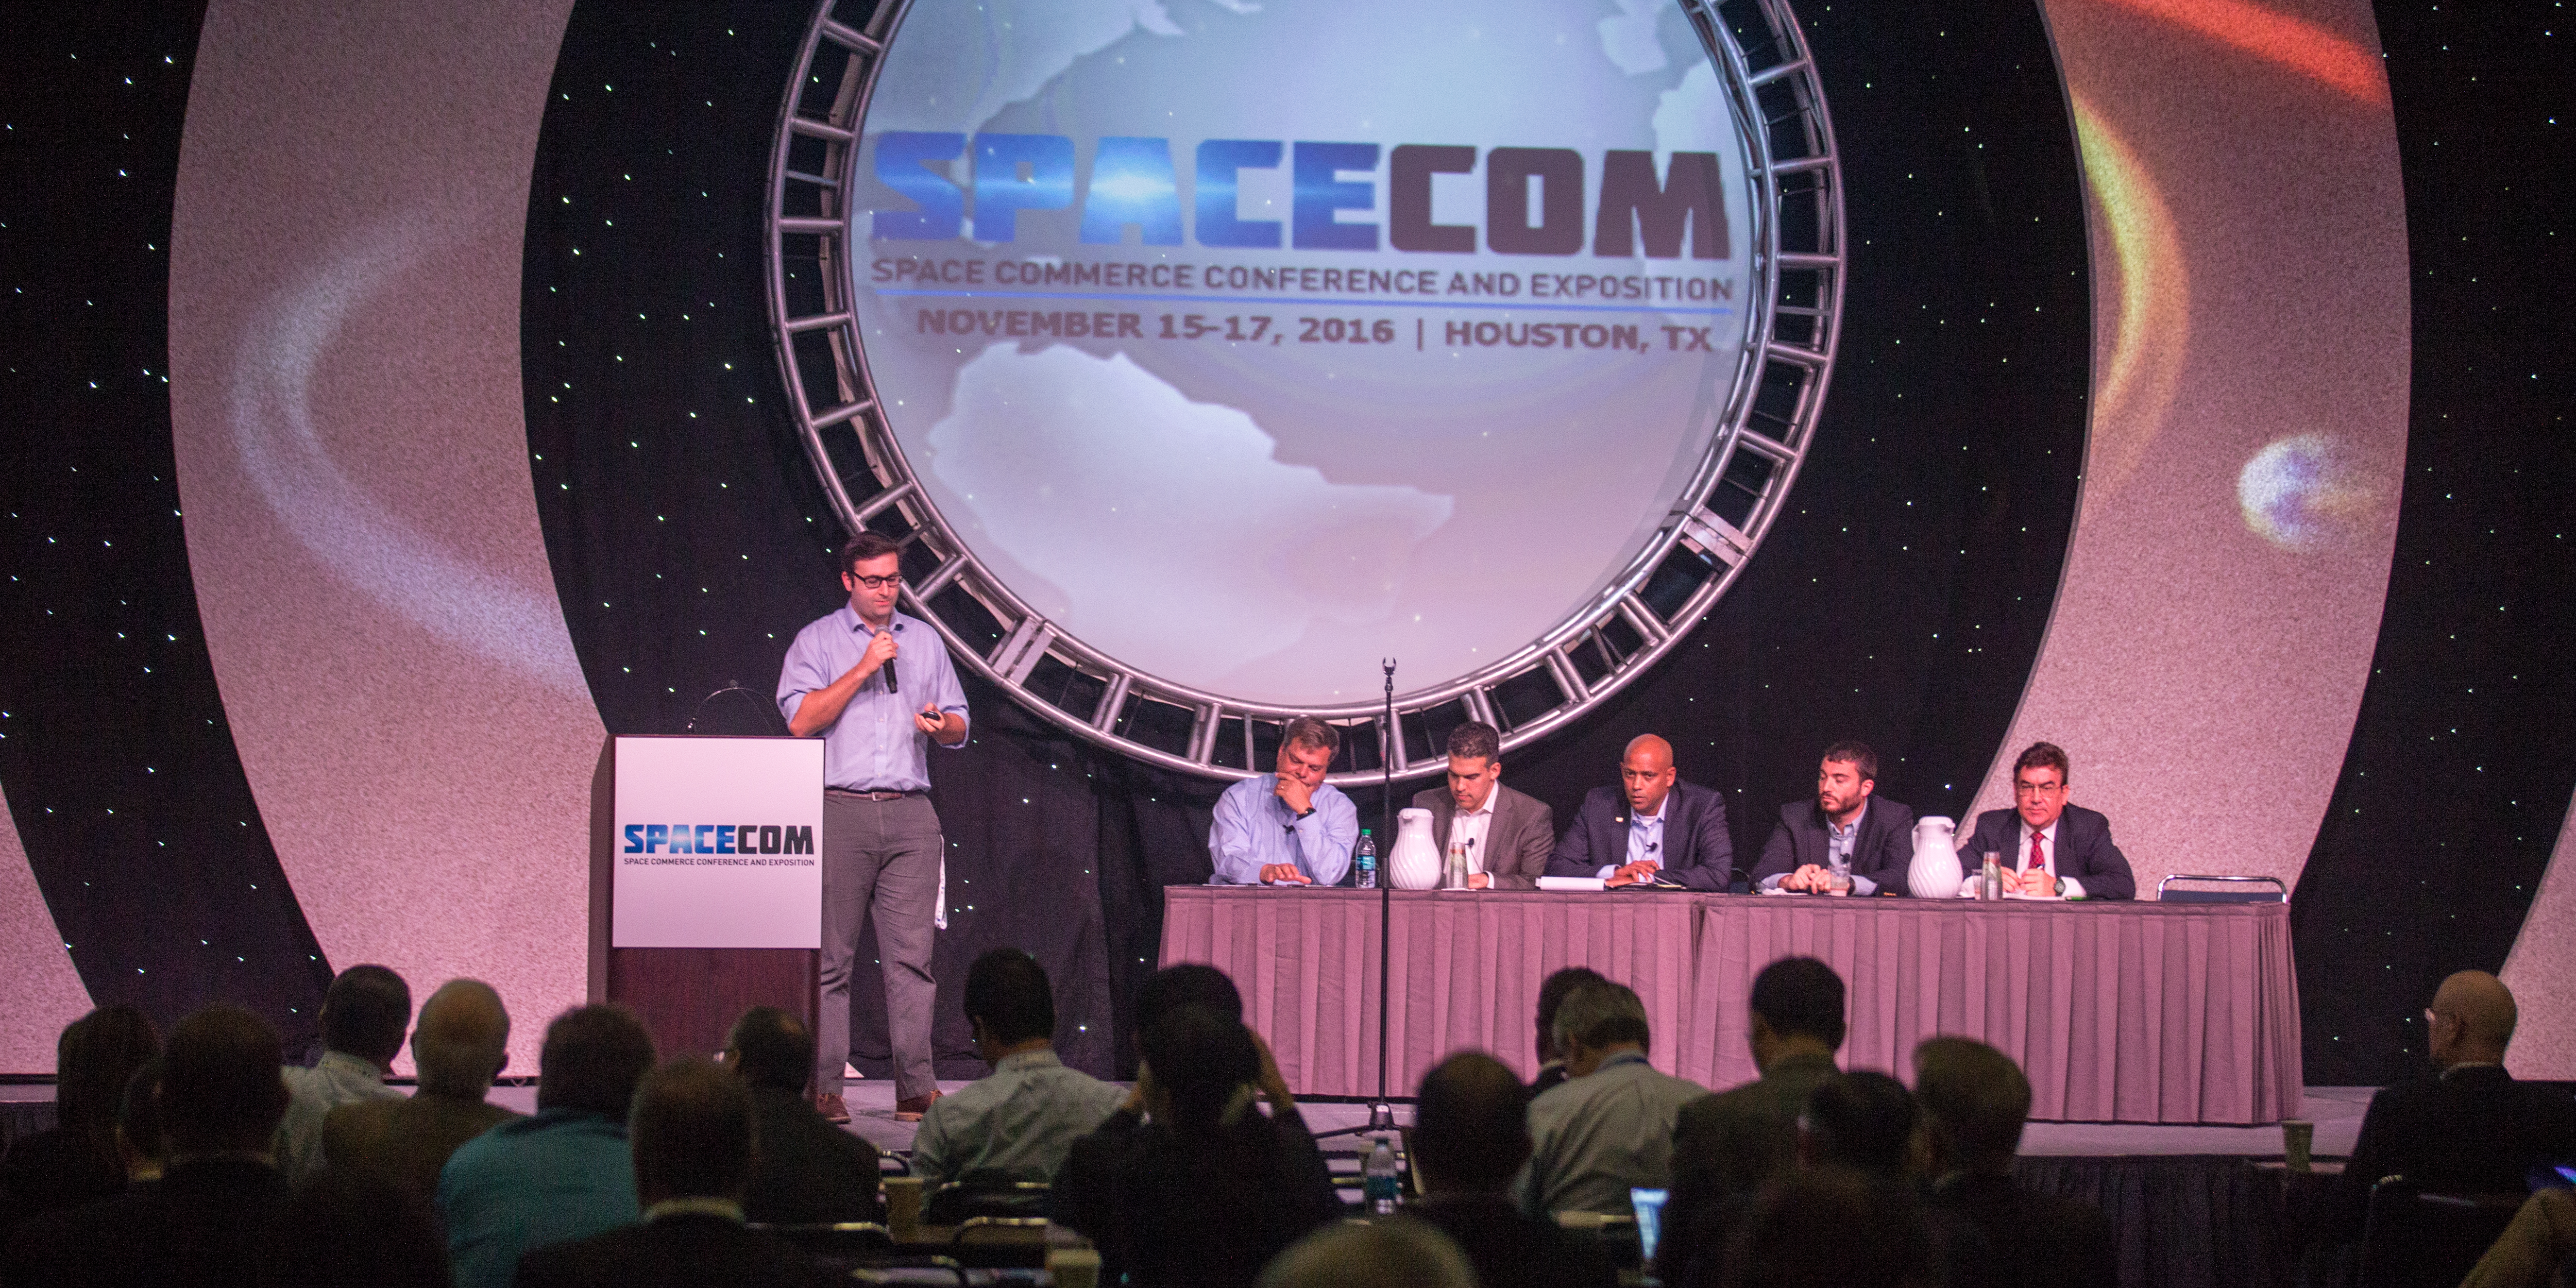 A Startup's Journey from the SpaceCom Stage to ISS aboard